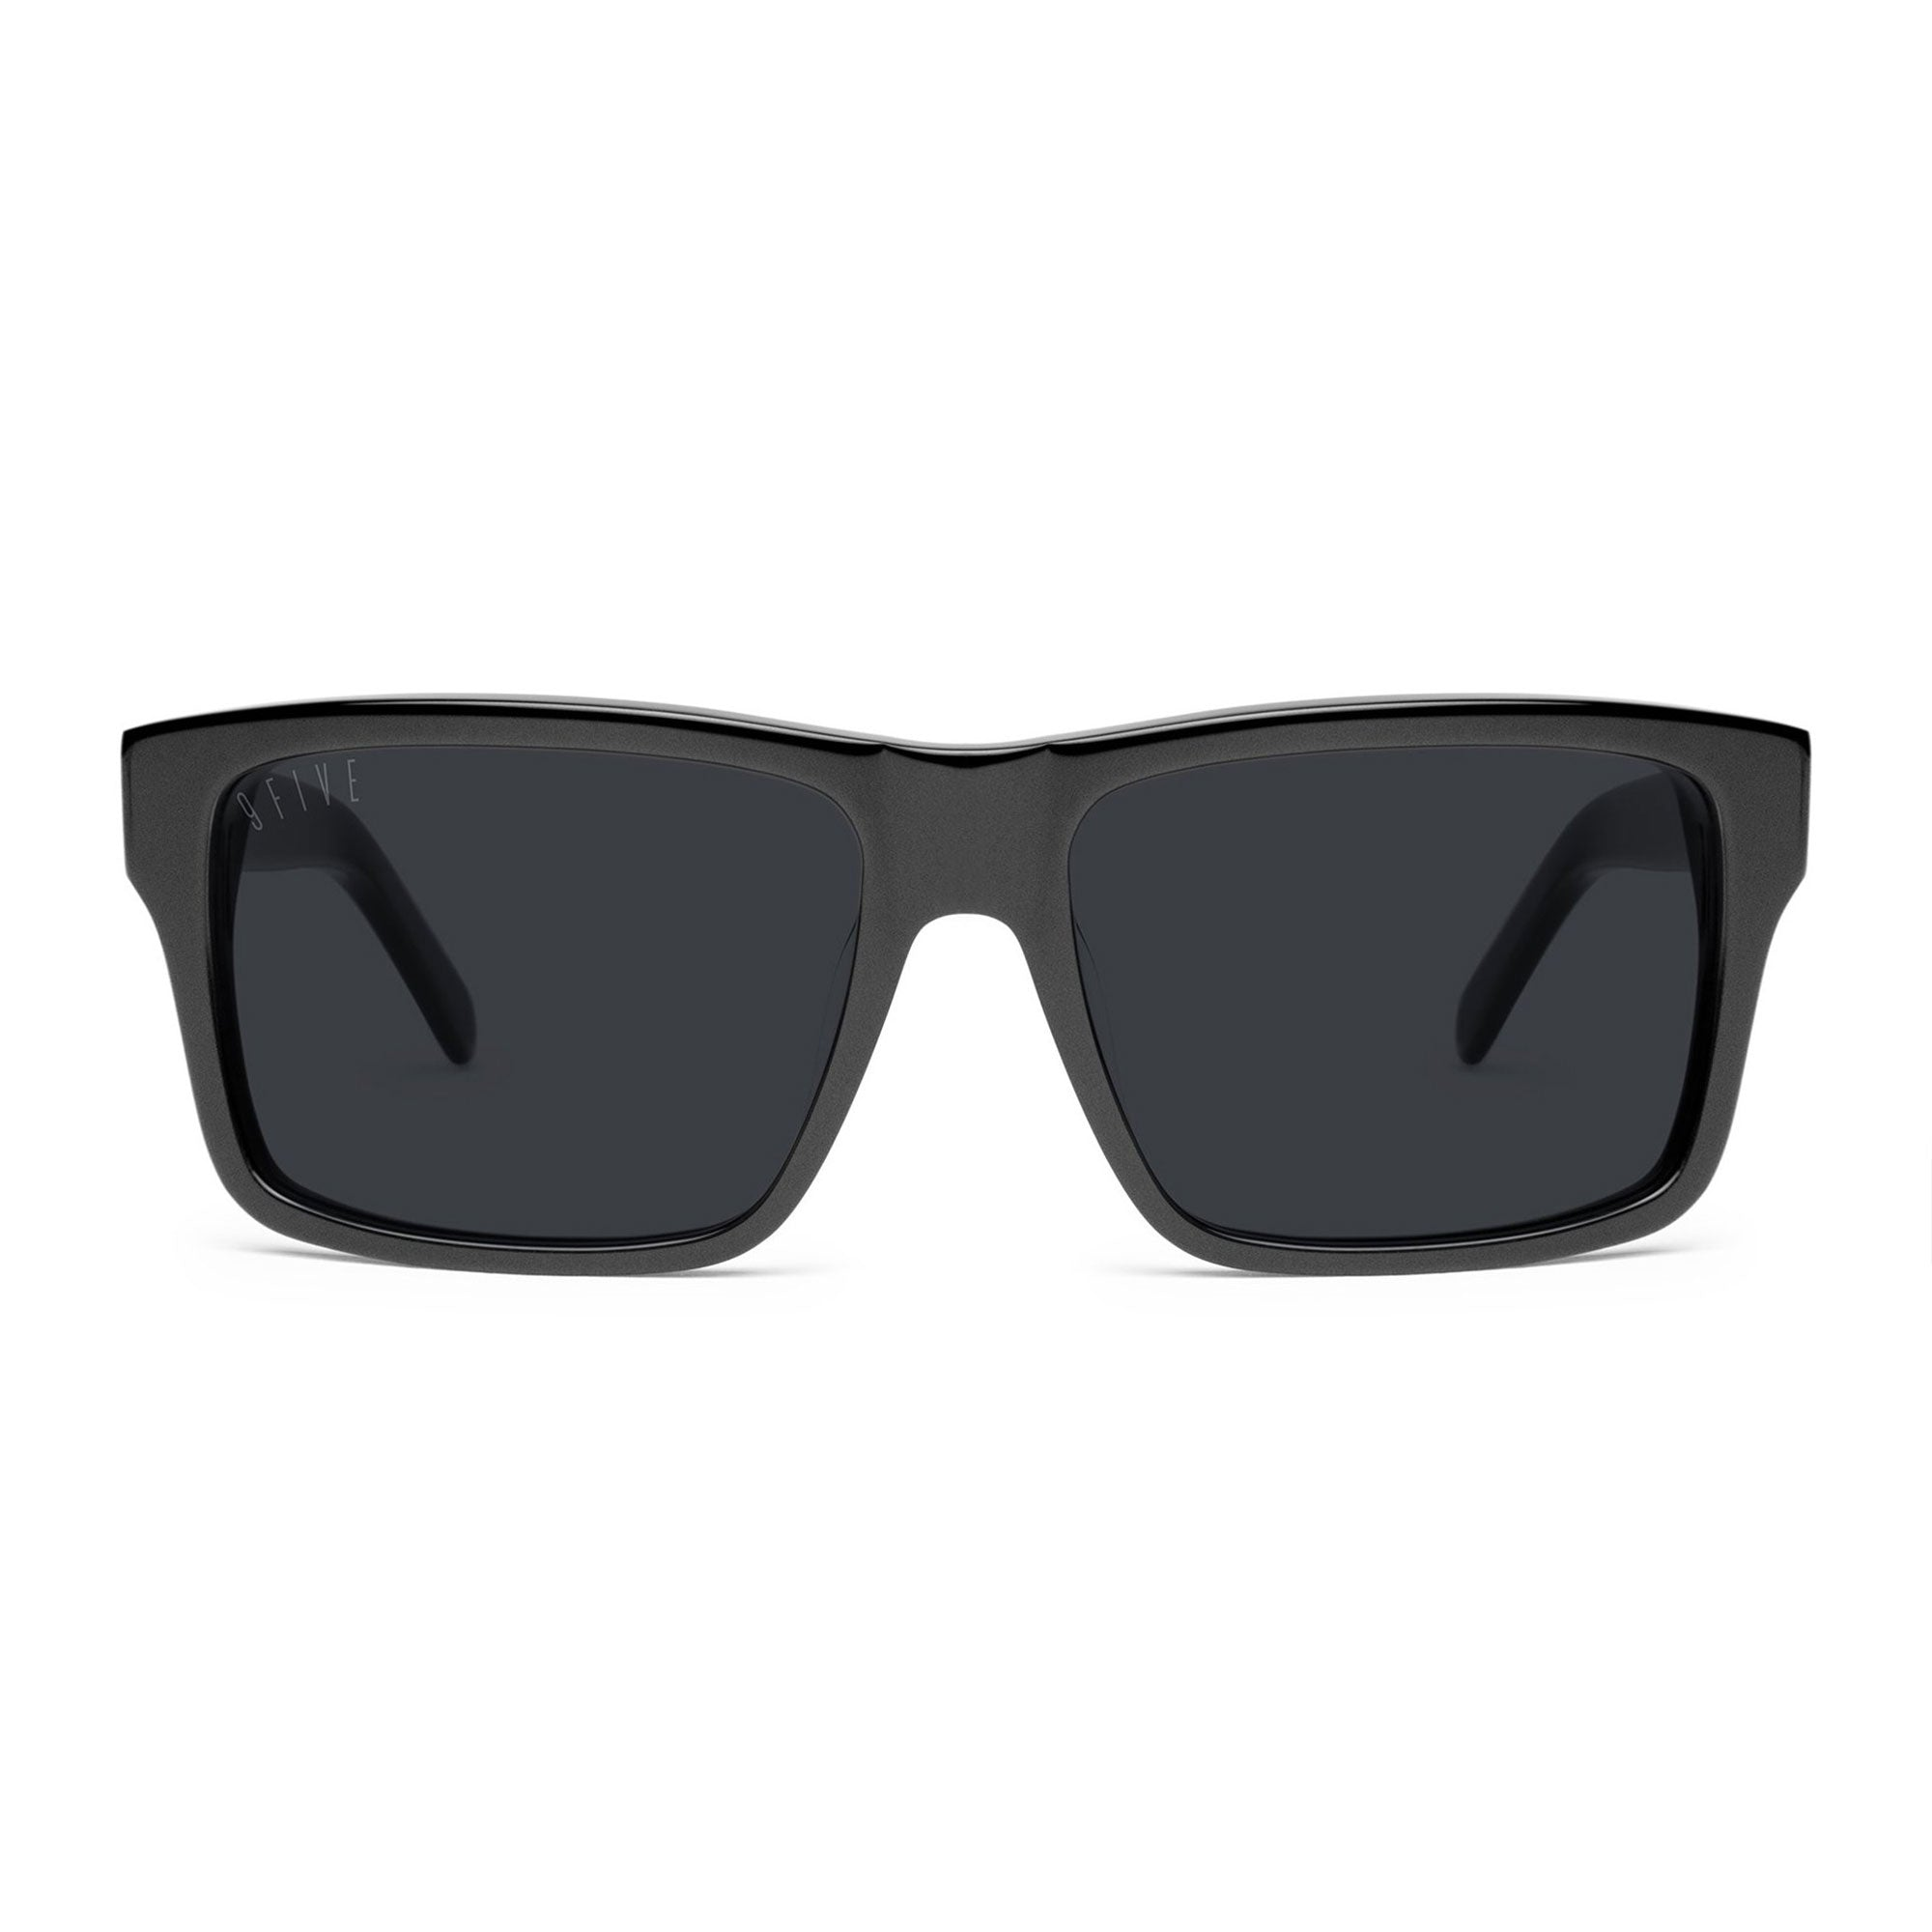 9 Five Caps Sunglasses - Matte Black Product Photo #2